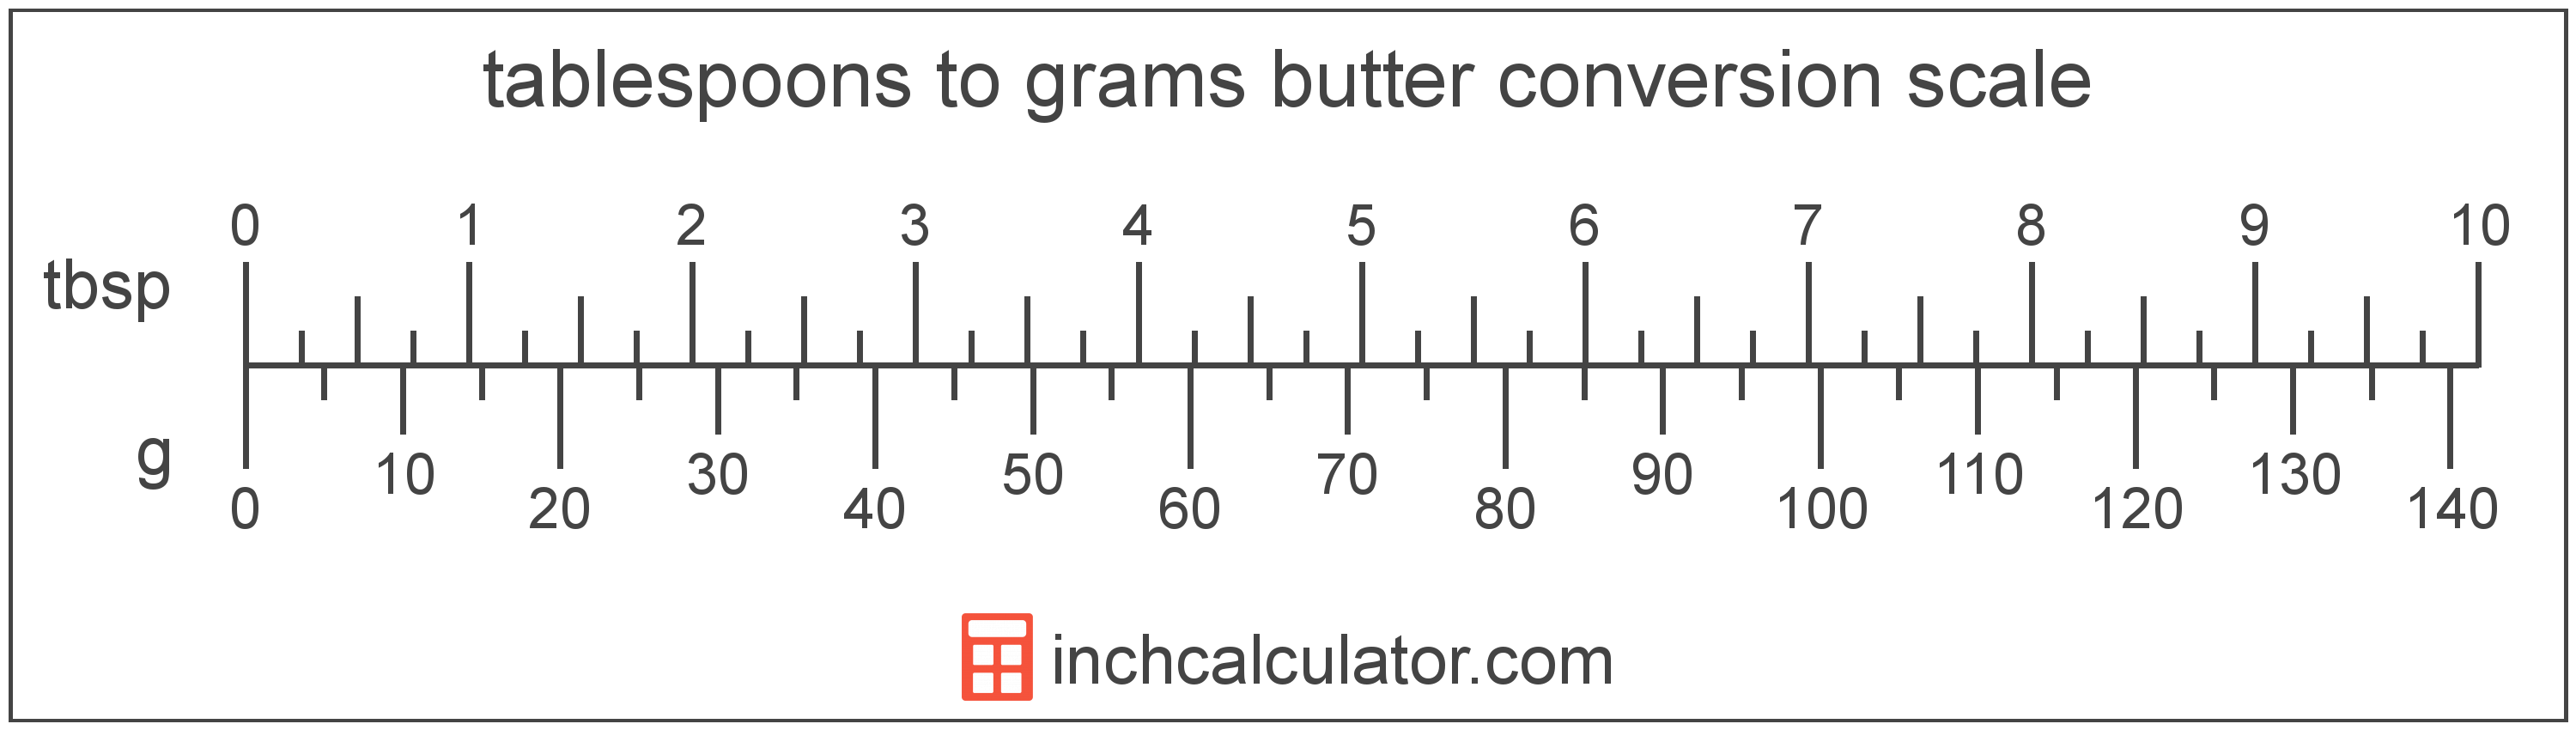 Grams Of Butter To Tablespoons Conversion G To Tbsp